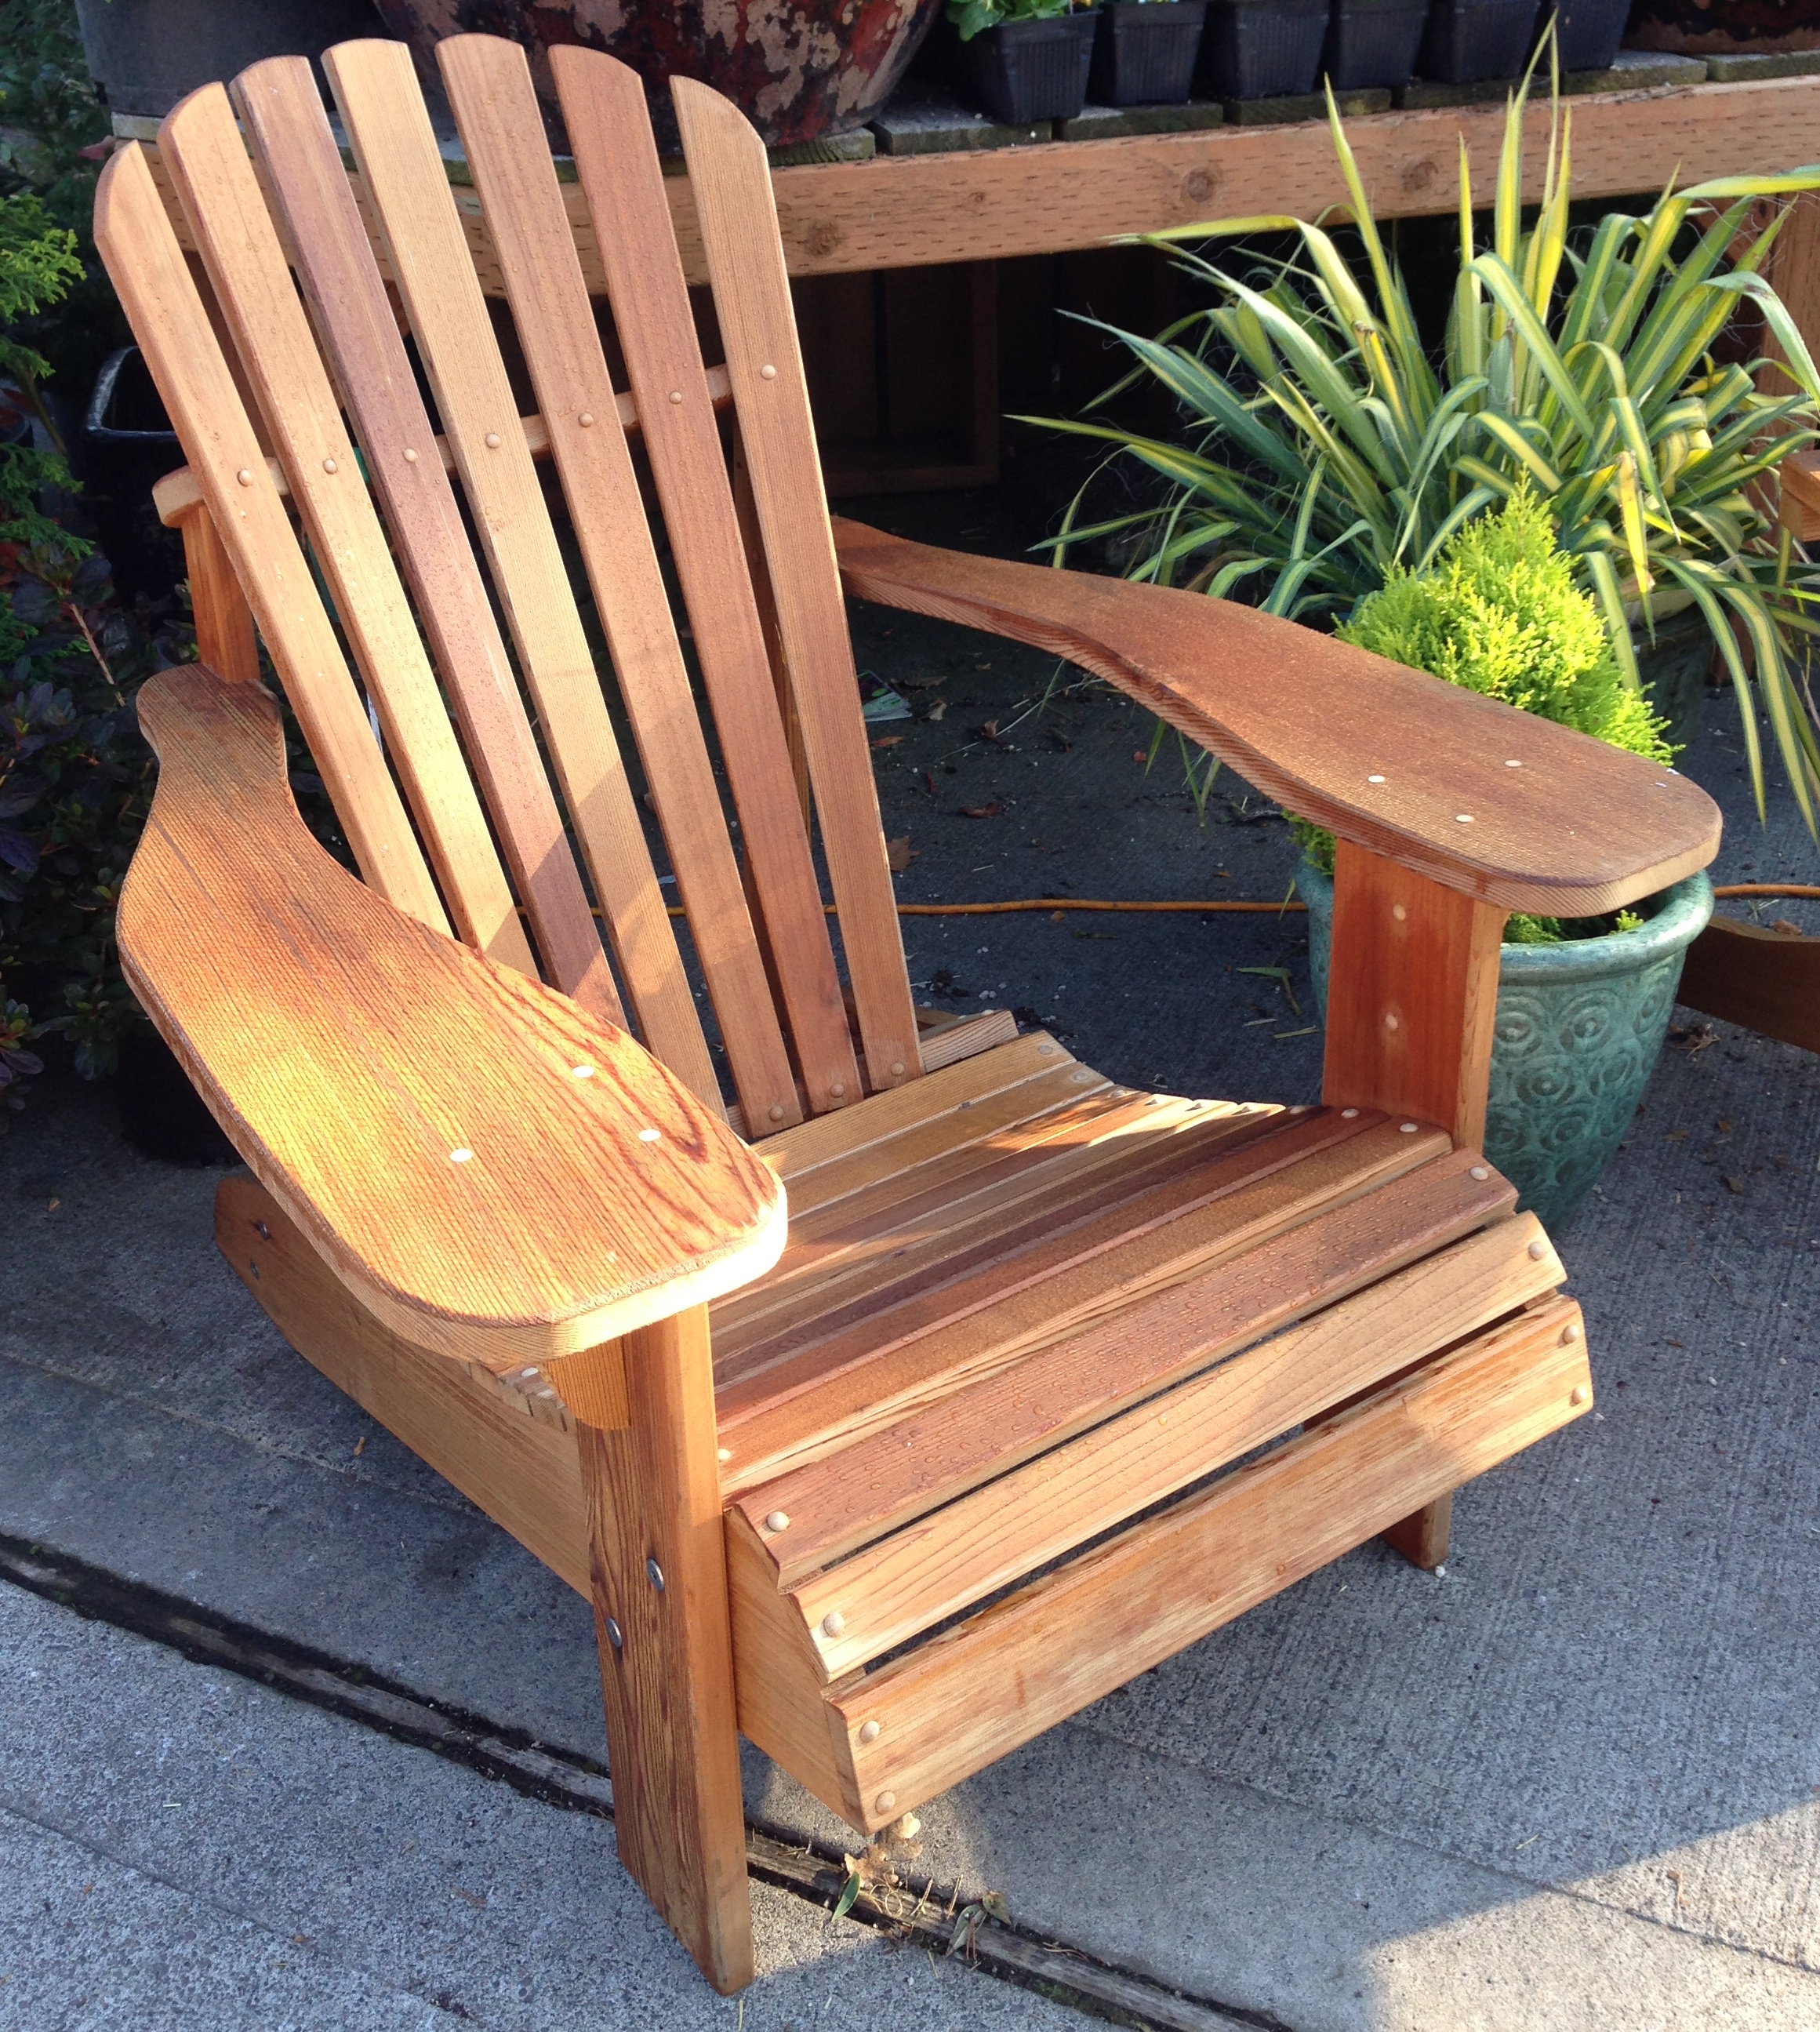 How to care for teak adirondack chairs